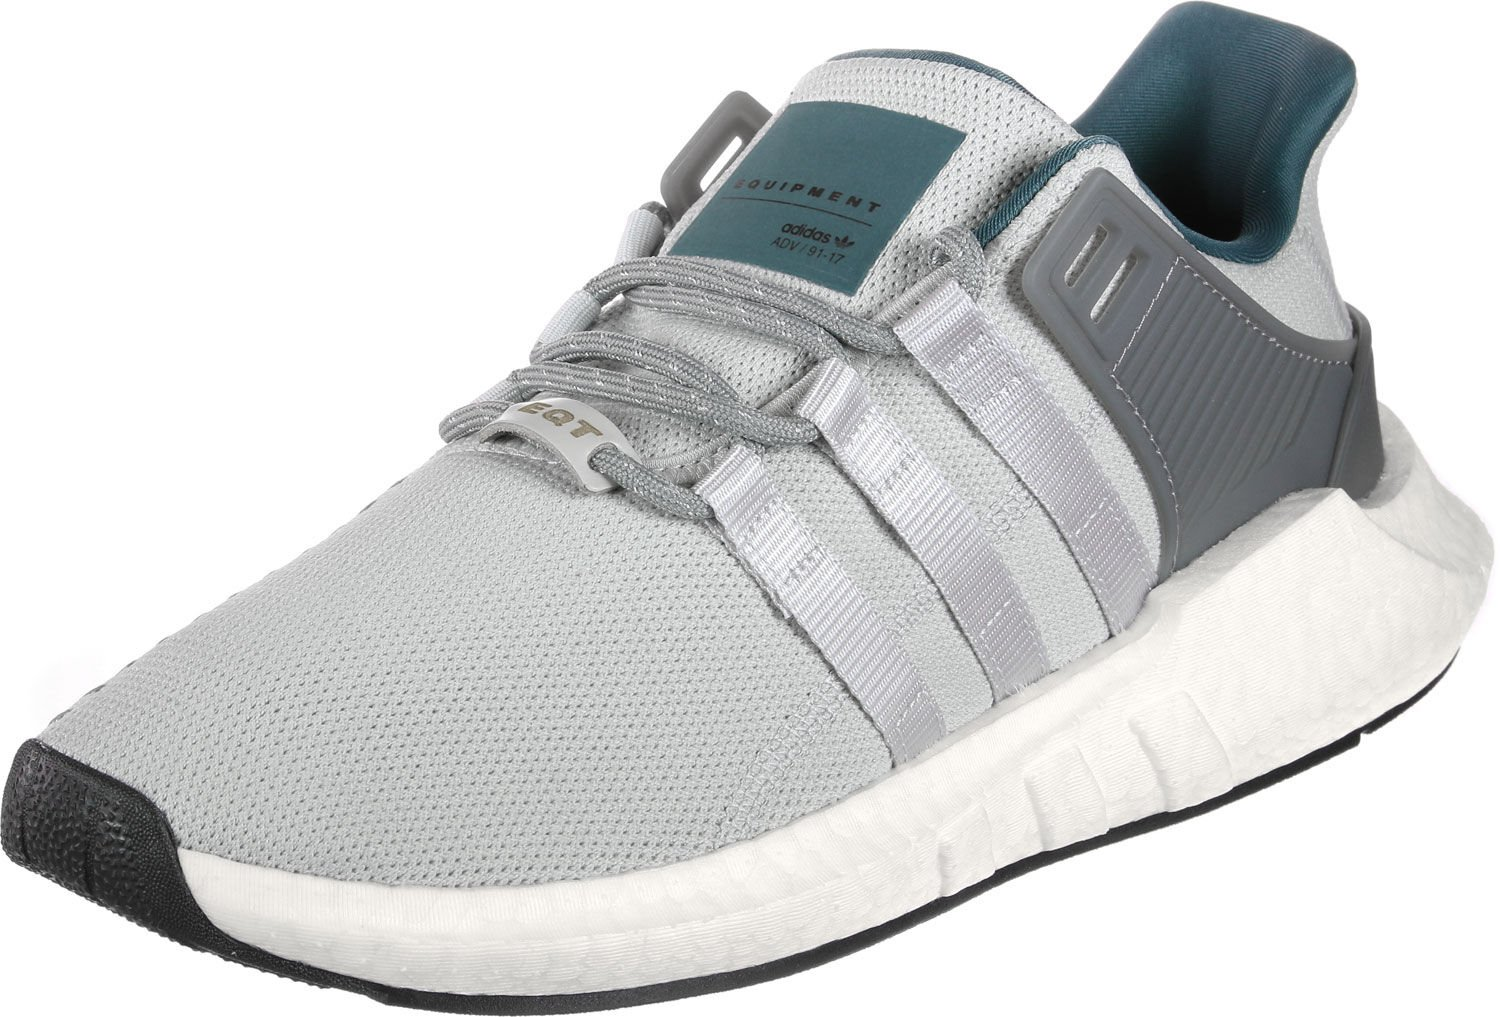 Sí misma Tropezón Centelleo  adidas EQT Support 93/17 - Sneakers Low at Stylefile